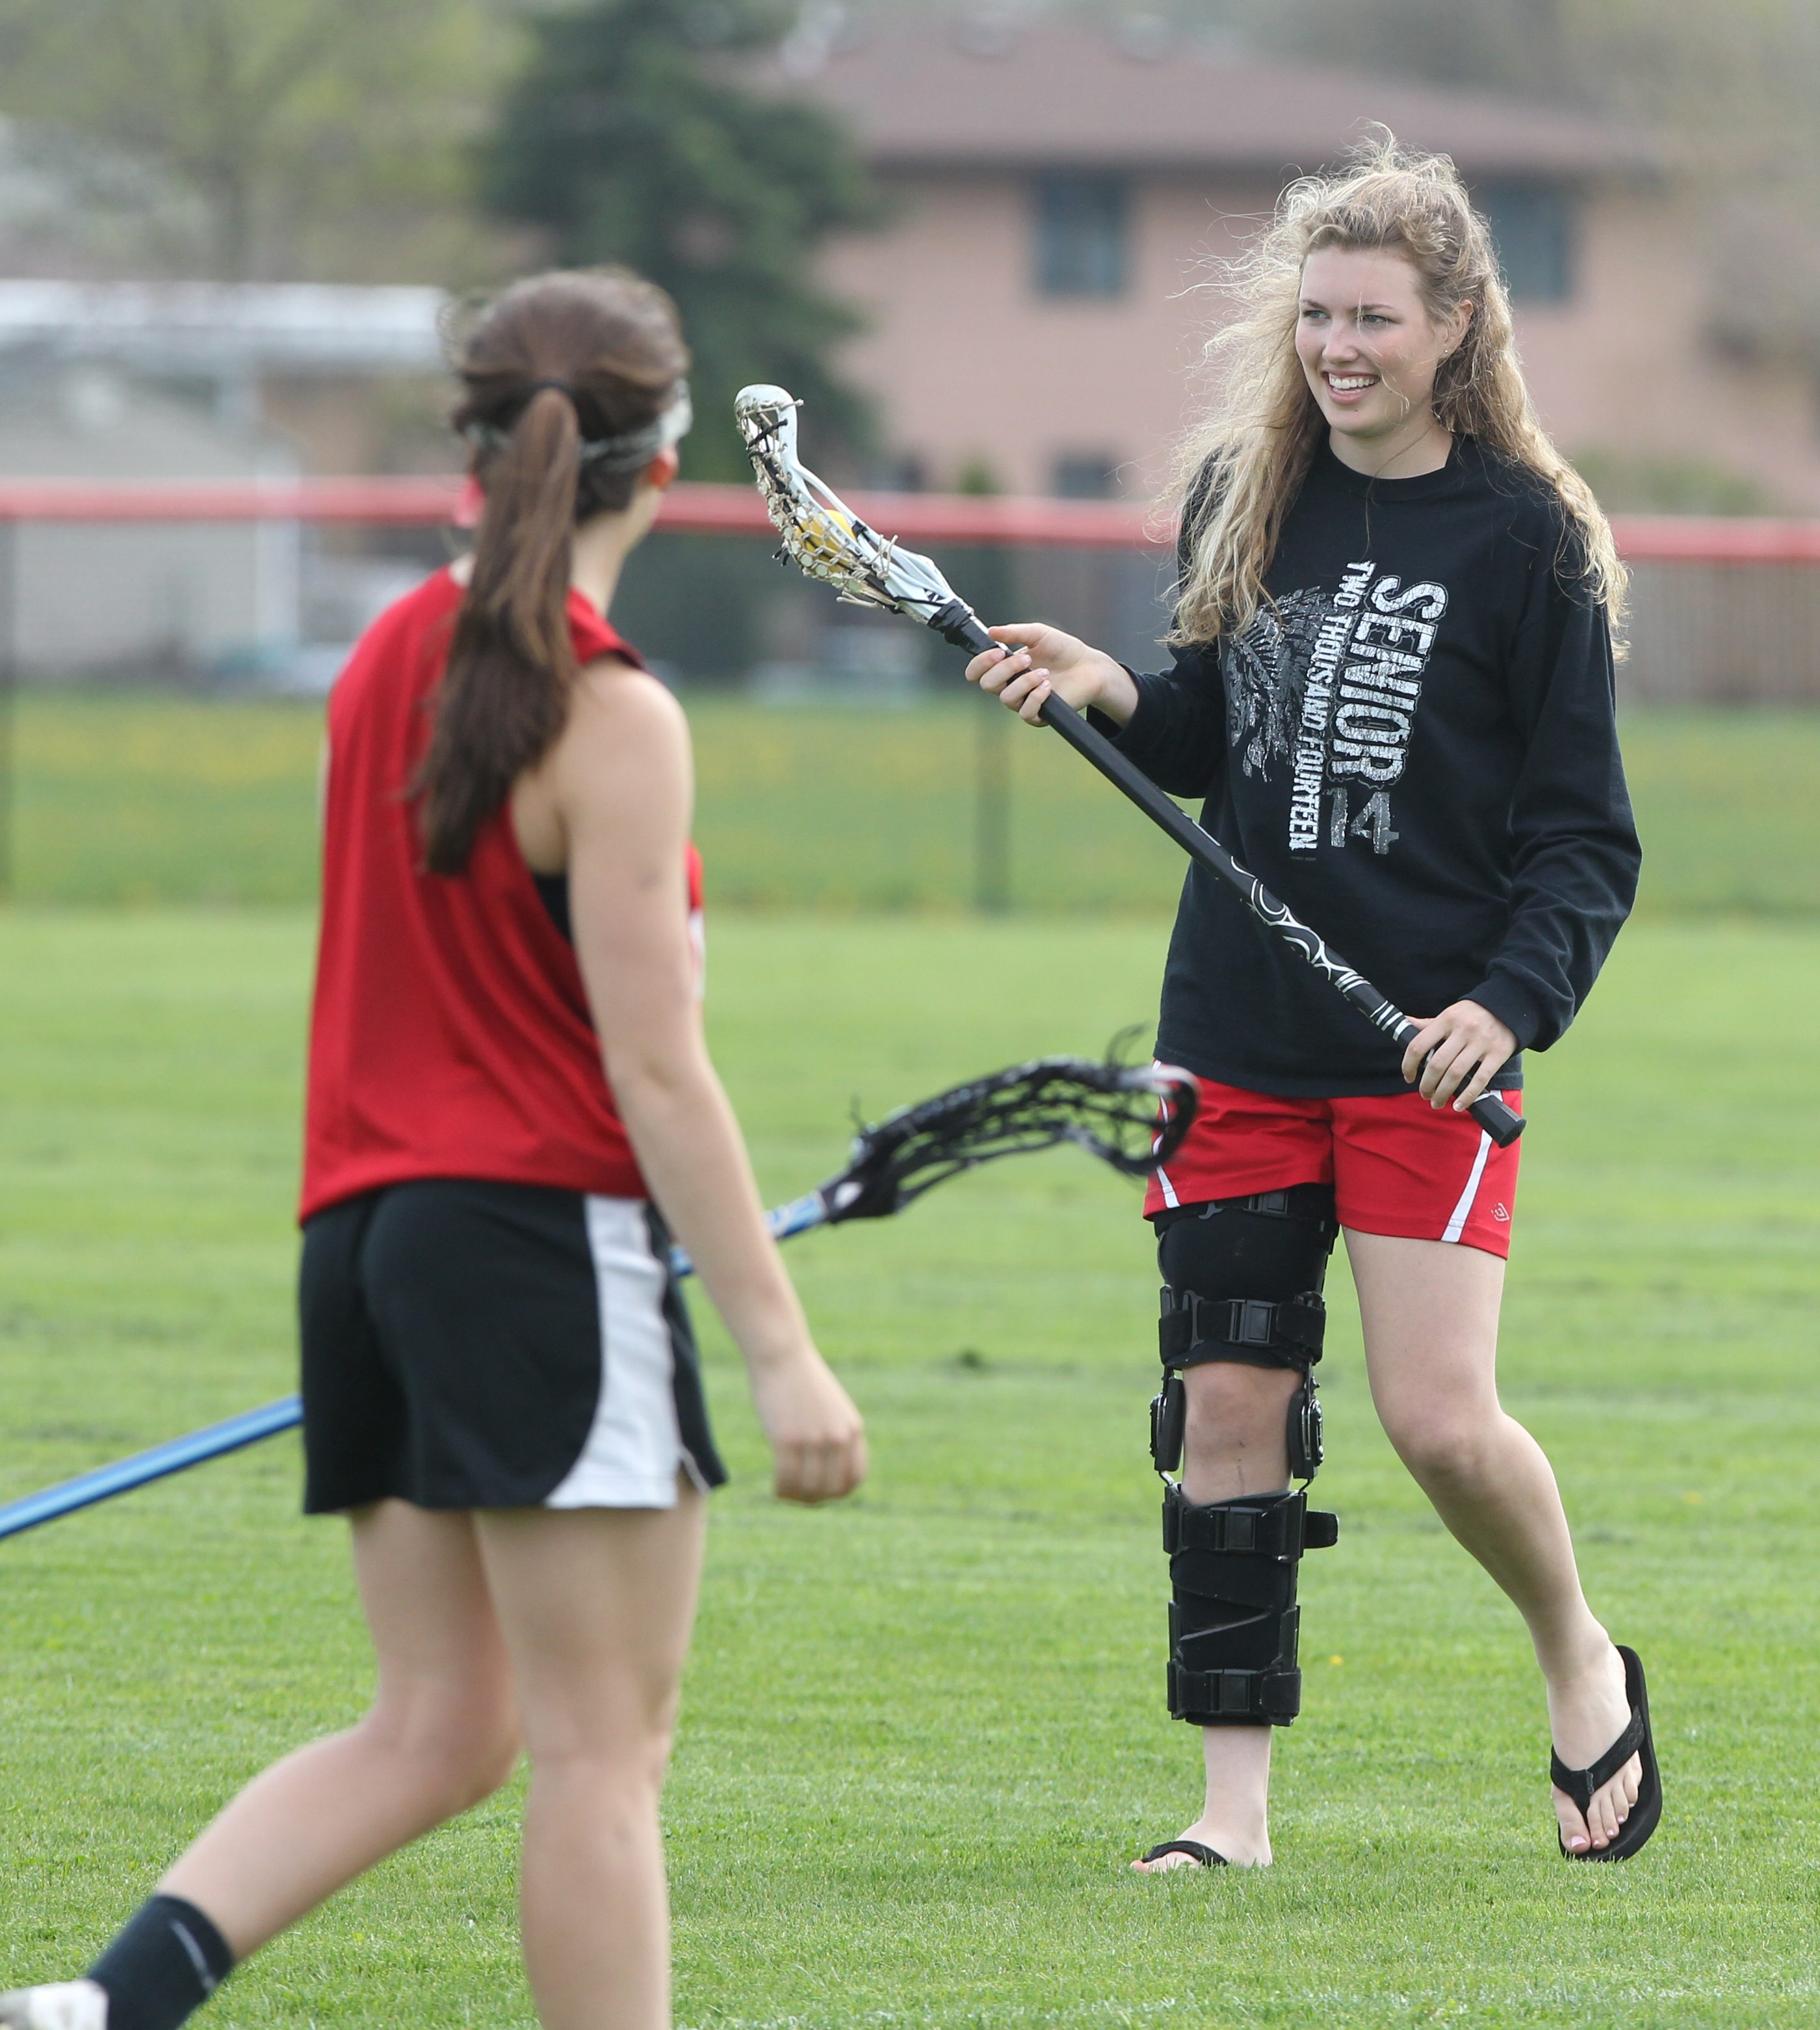 Senior Rachel Heidenreich is doing her best to contribute to Lancaster's on-field success as an assistant while being sidelined by a knee injury.